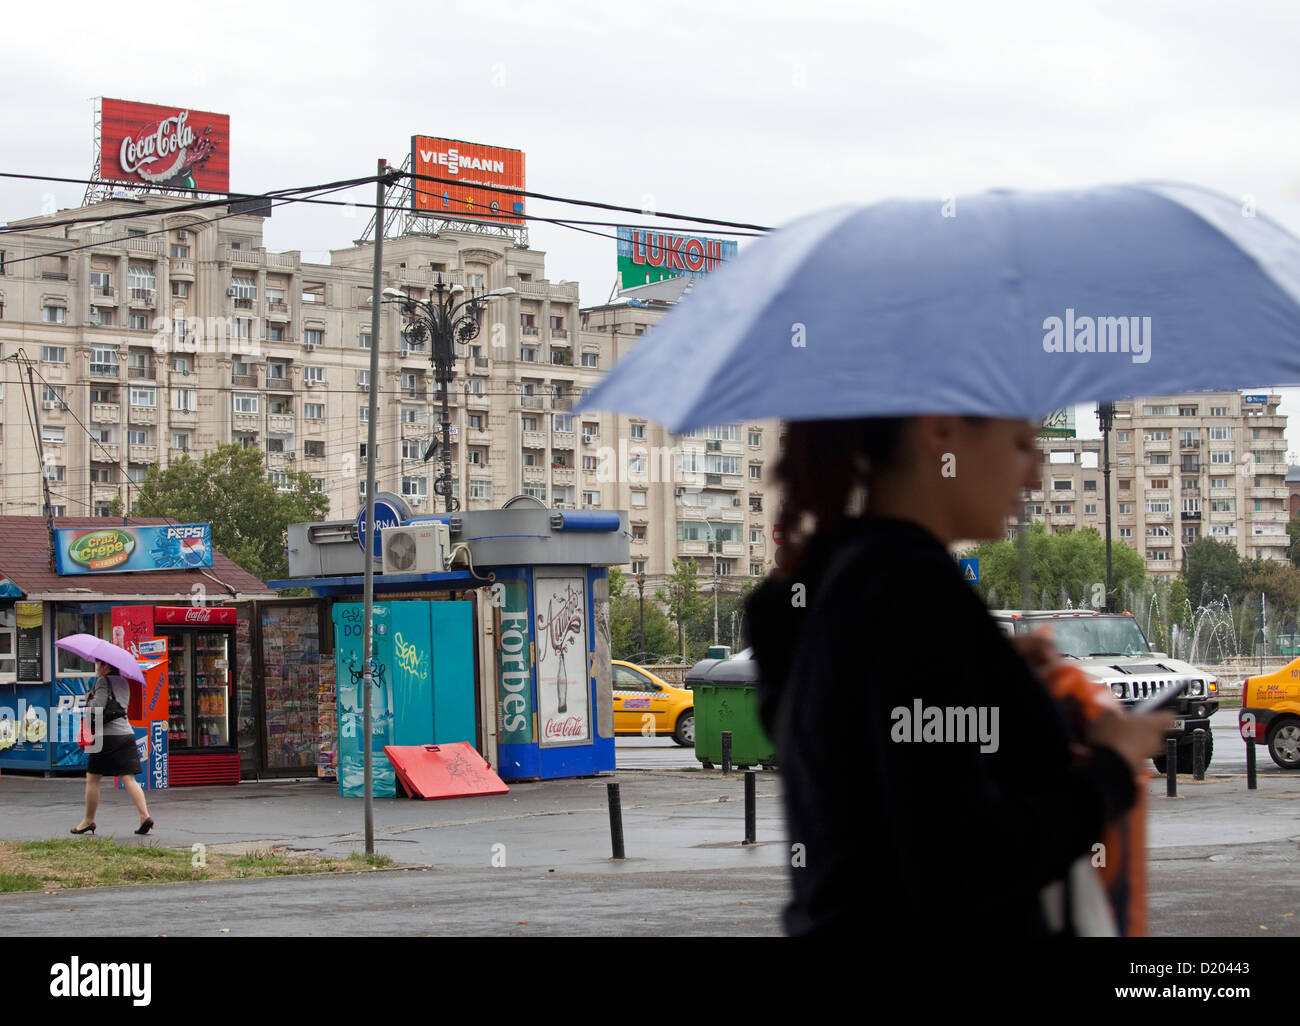 Bucharest, Romania, and passers-houses with billboards in place of the unit - Stock Image